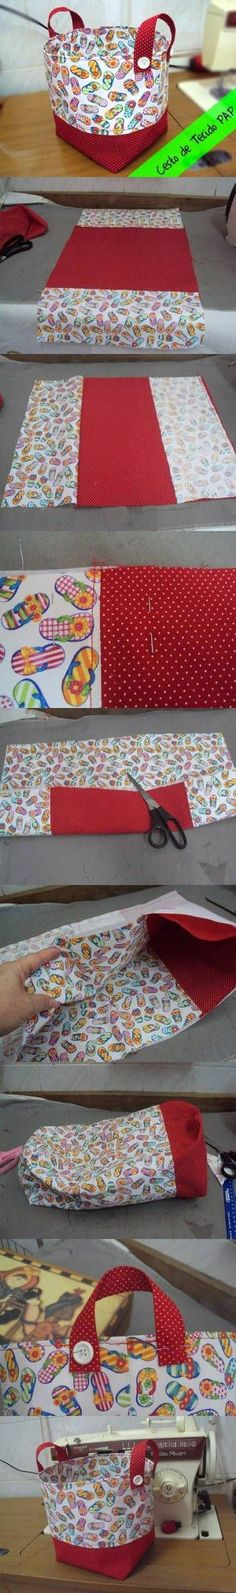 DIY Easy Fabric Basket DIY Projects